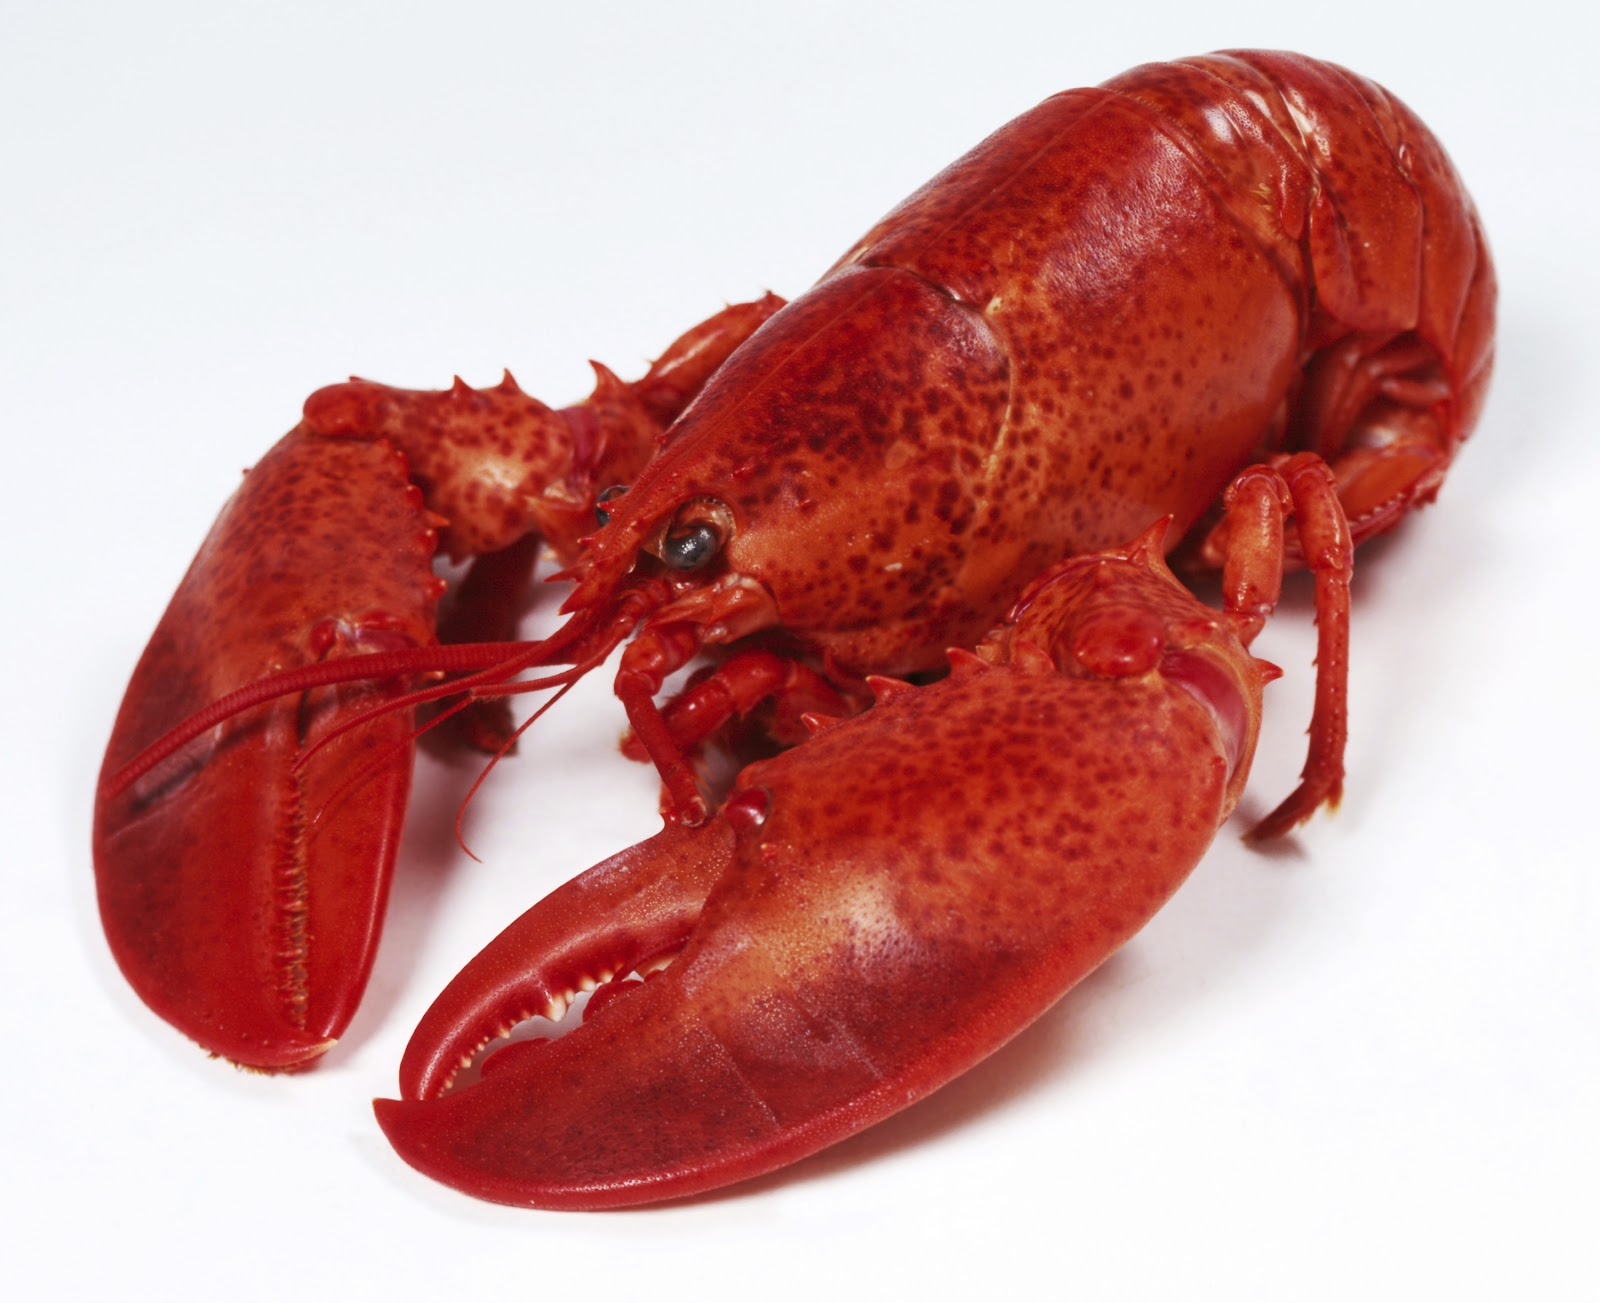 The Lobster Is Not About Seafood Our Relationship With